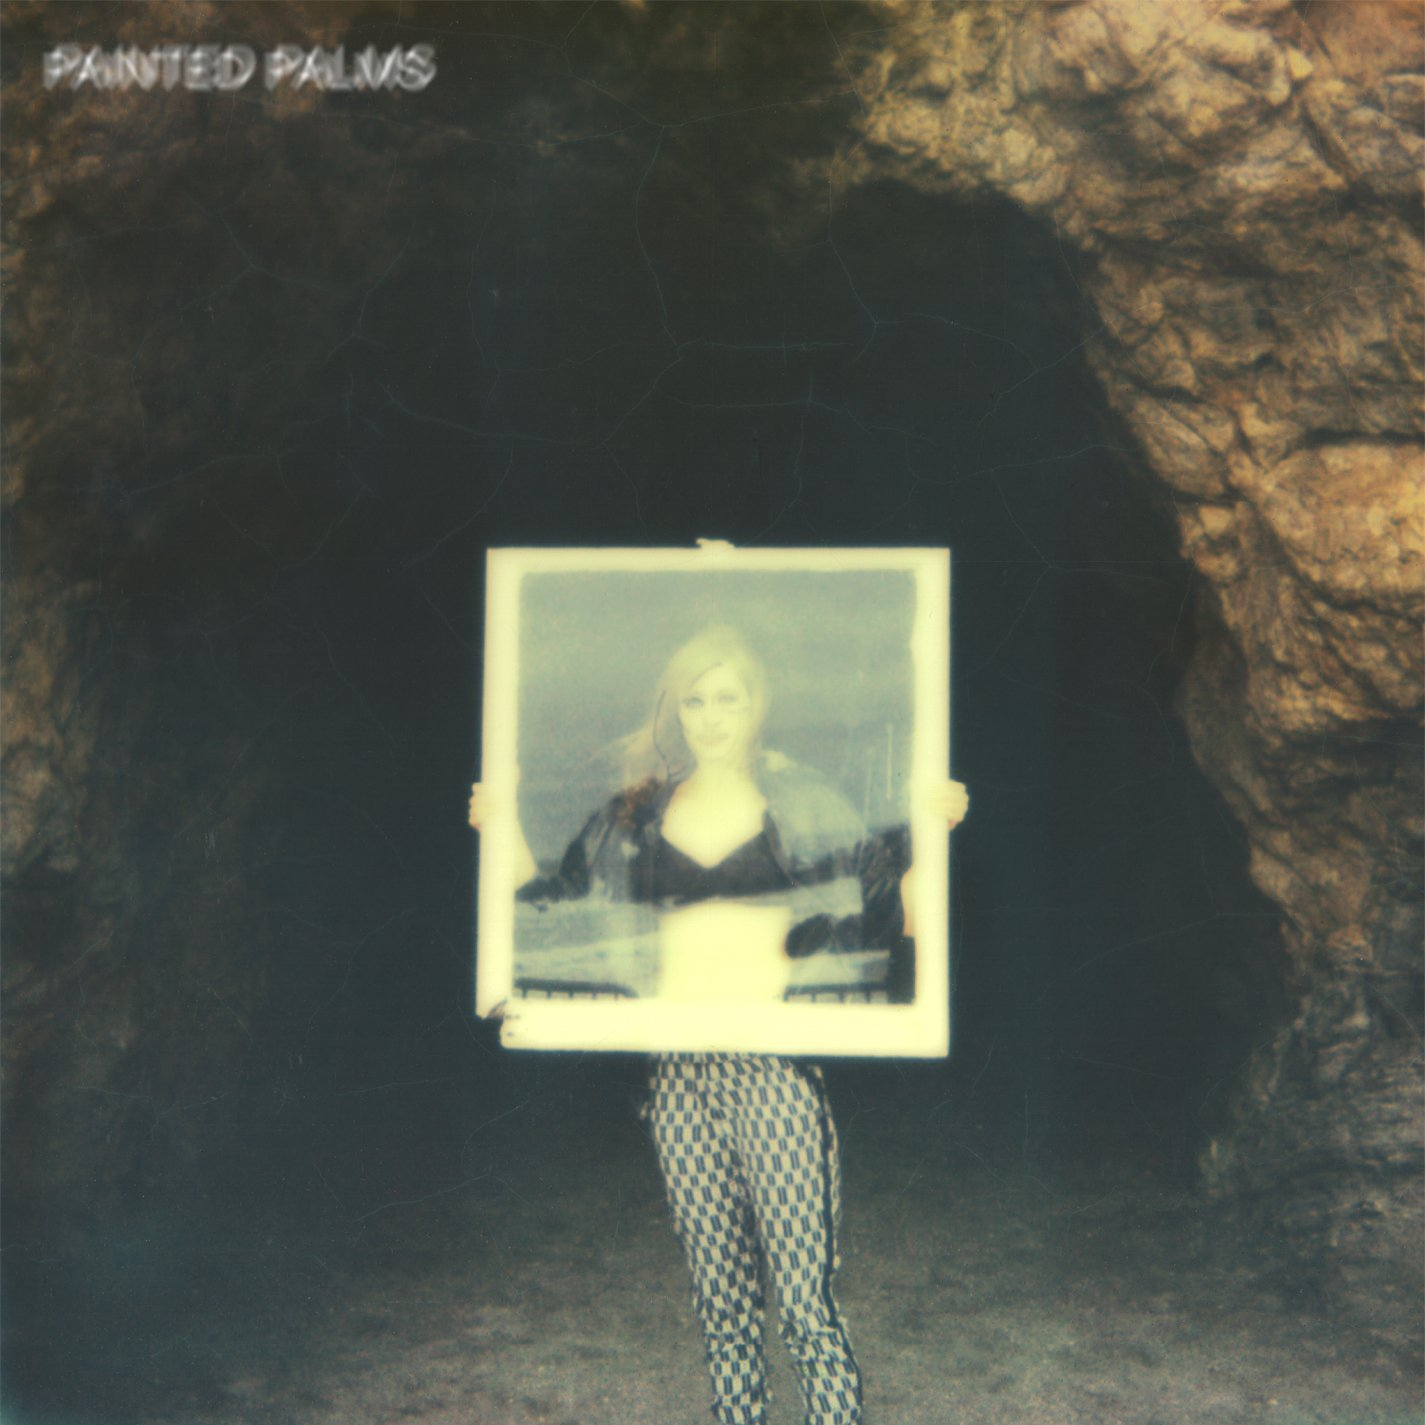 painted palms-forever